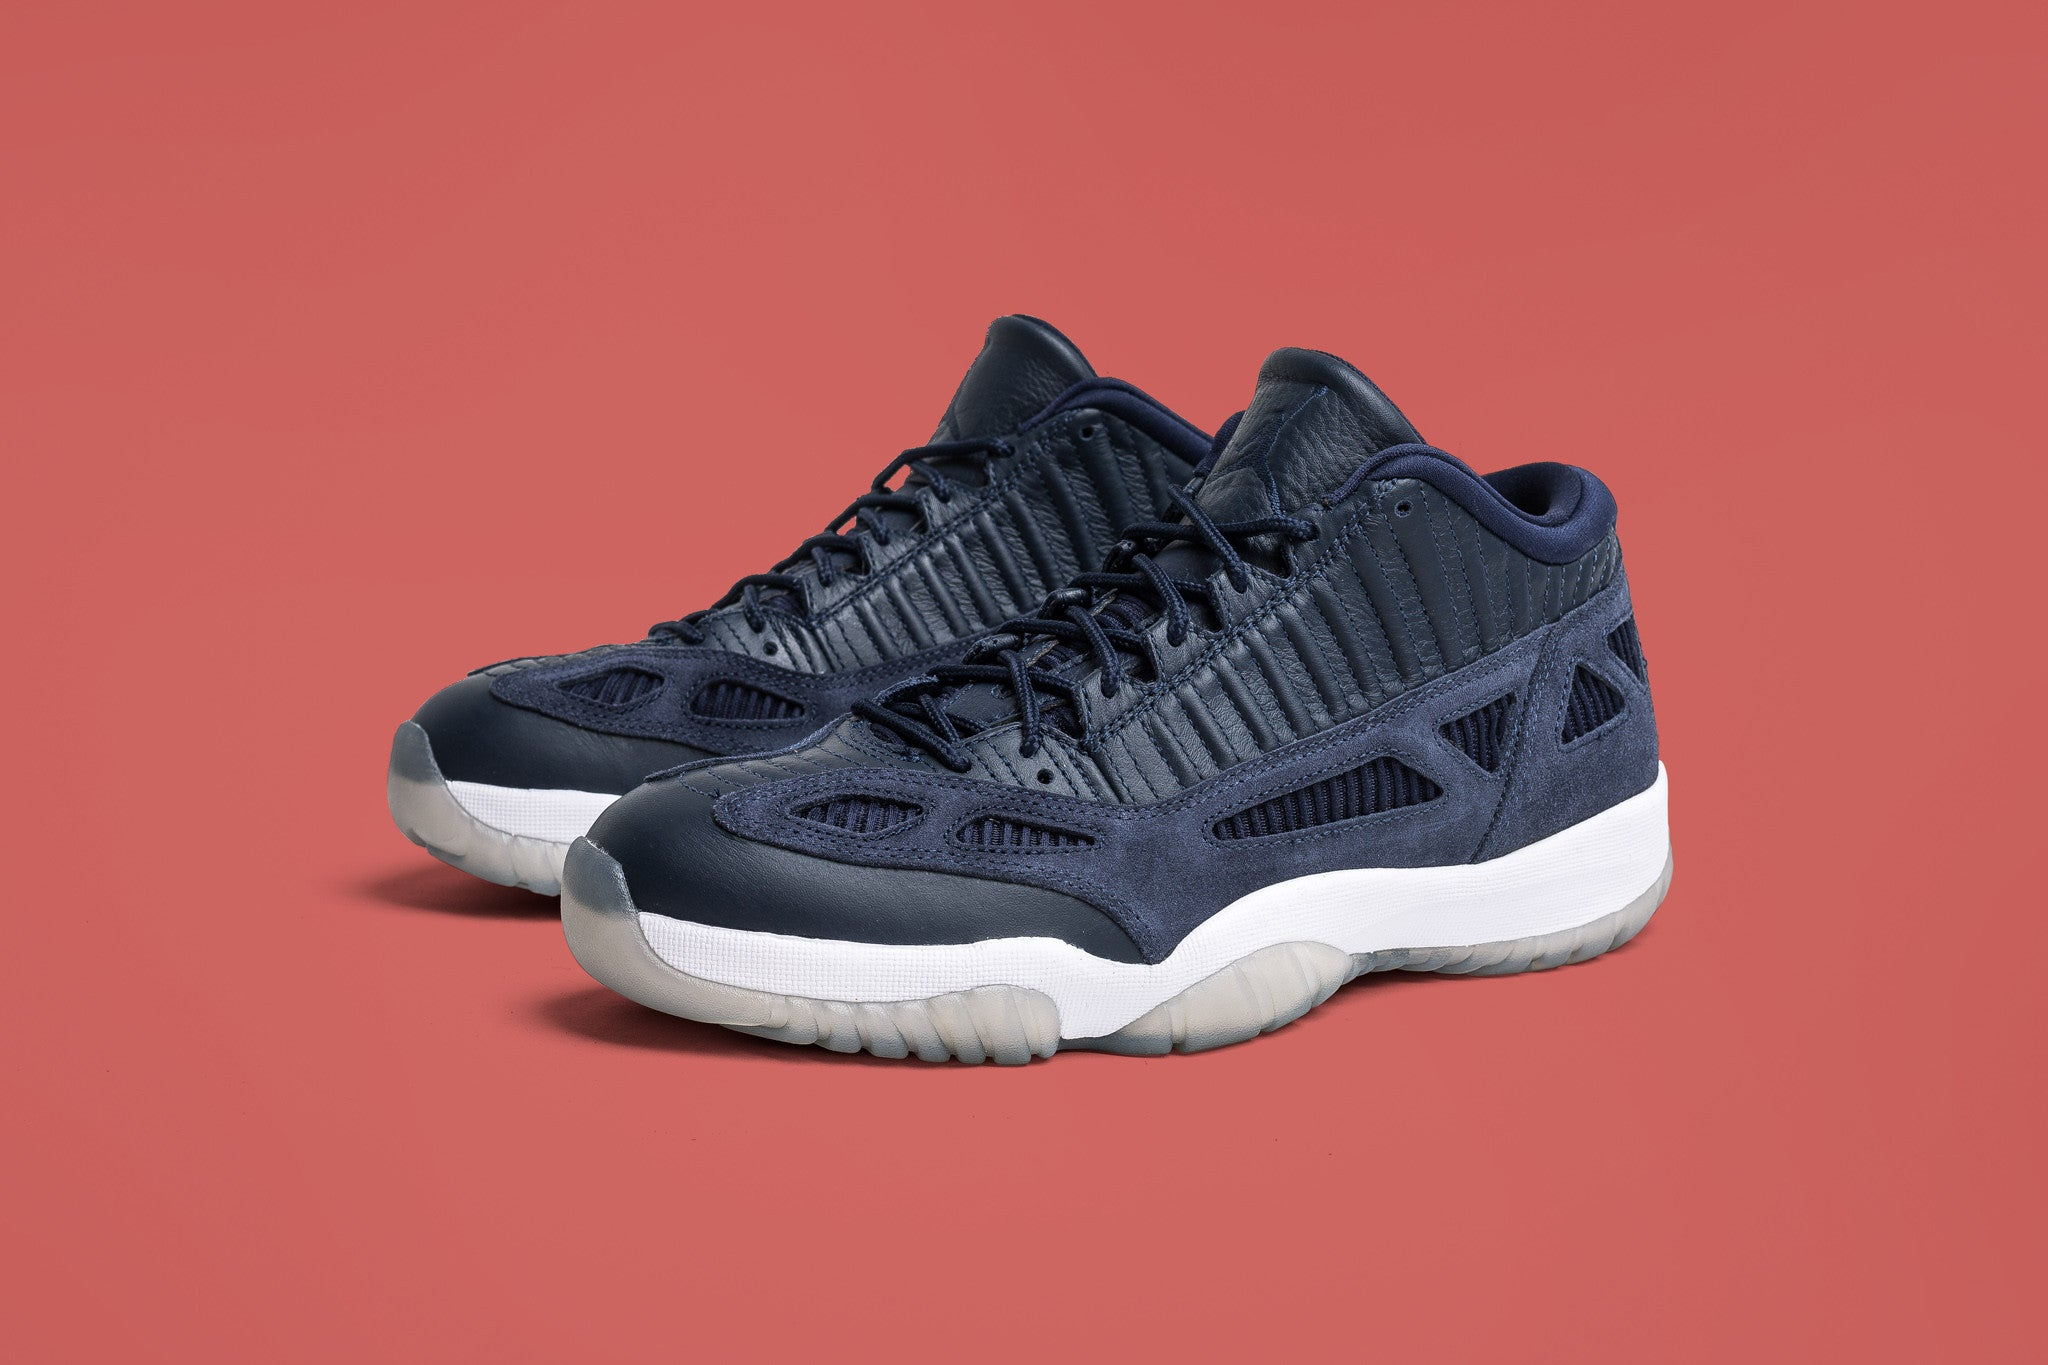 6e7131c39590 Air Jordan 11 Low IE